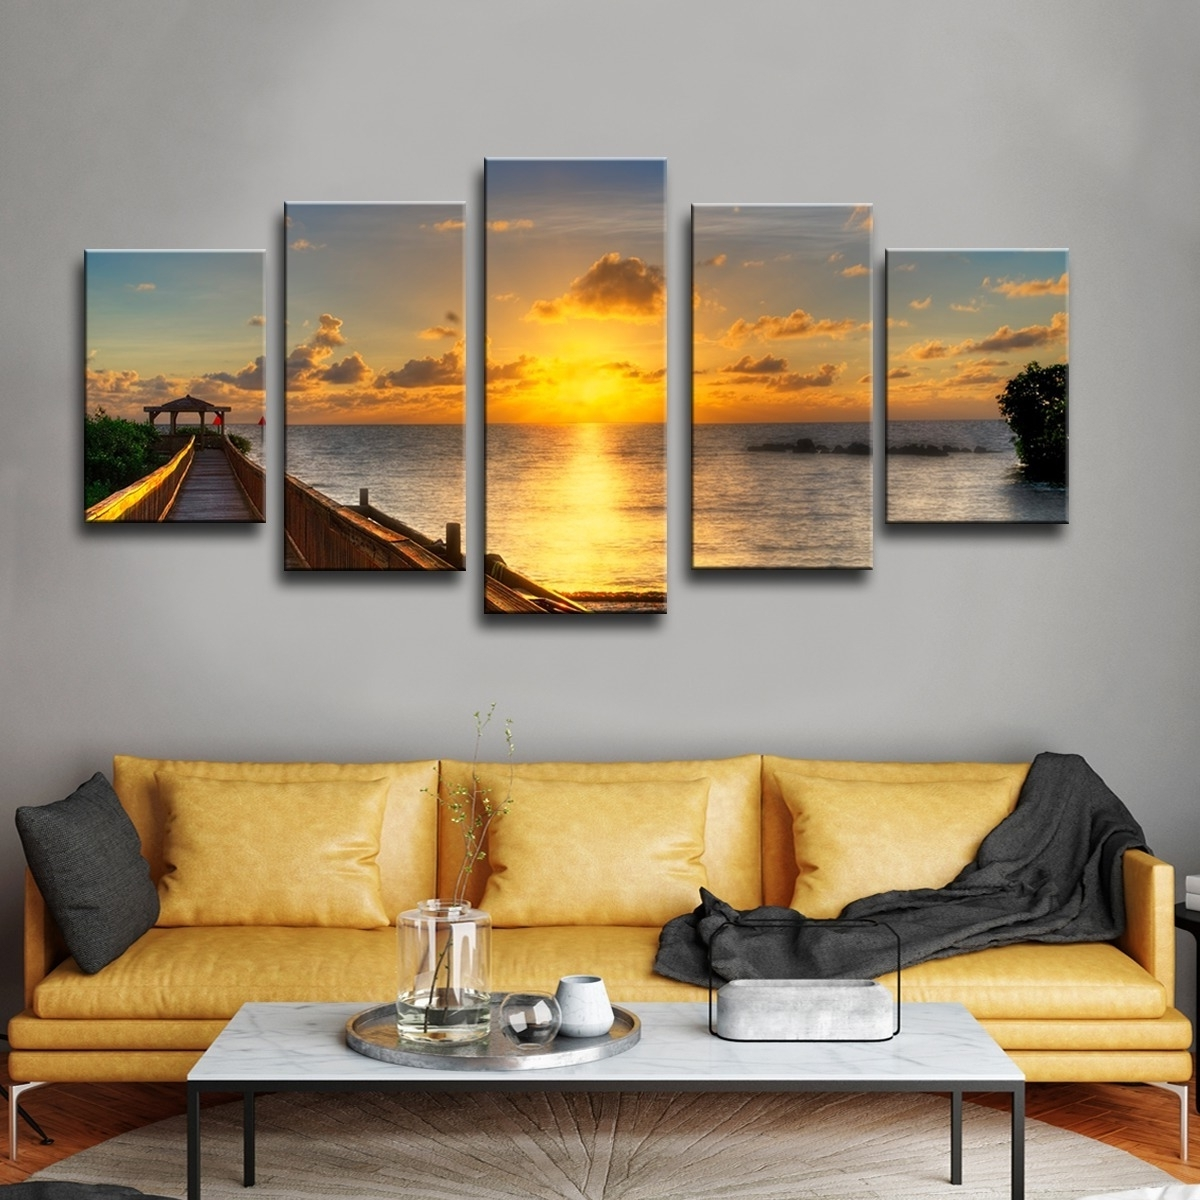 Widely Used Overstock Wall Art Within Shop Havenside Home Key's Sunrise' 5 Piece Set Canvas Wall Art (View 6 of 15)